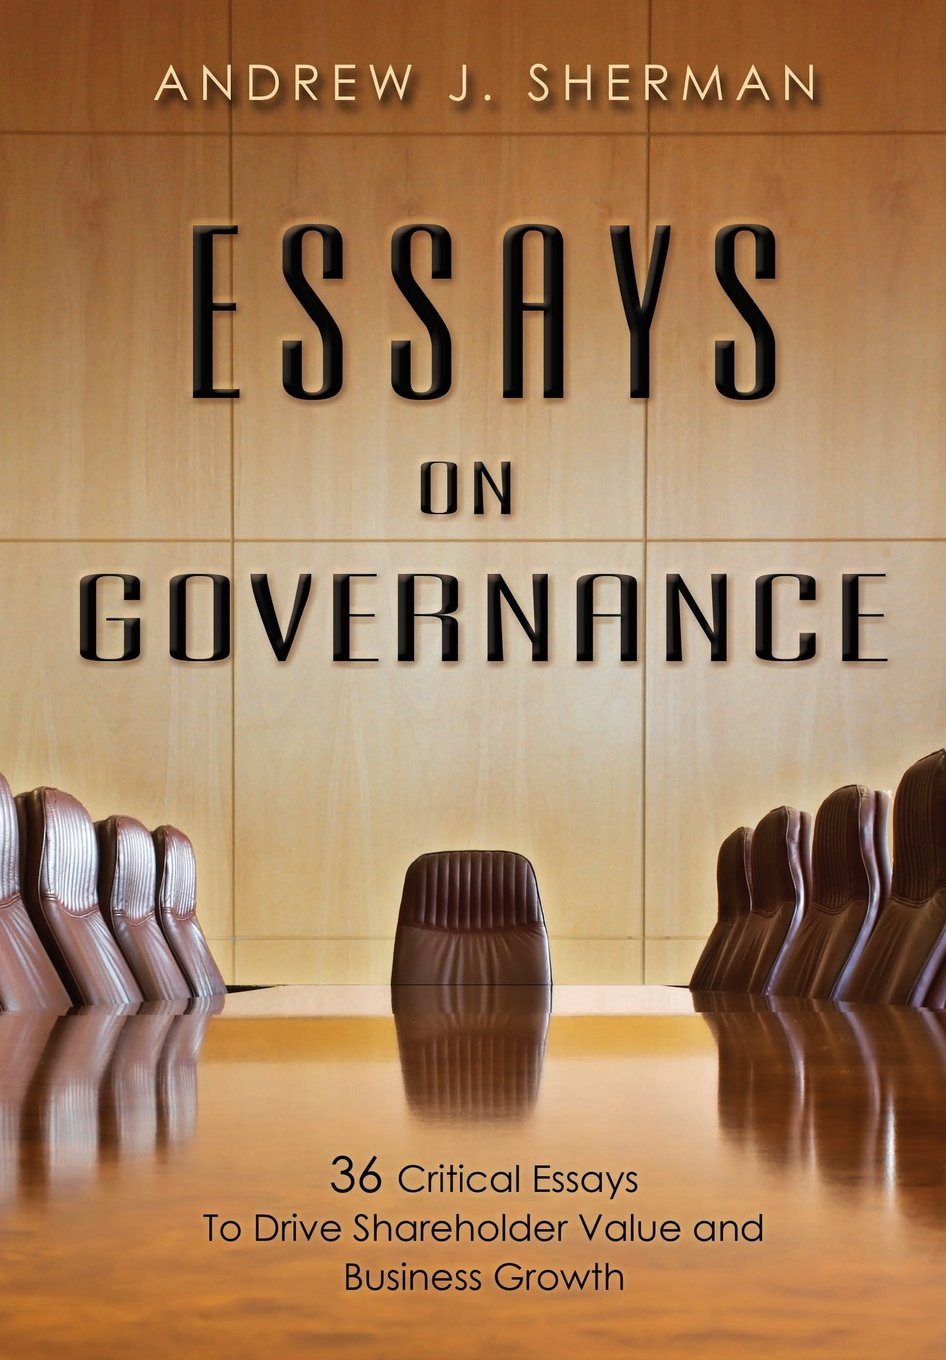 com essays on governance critical essays to drive com essays on governance 36 critical essays to drive shareholder value and business growth 9781599323336 andrew j sherman books